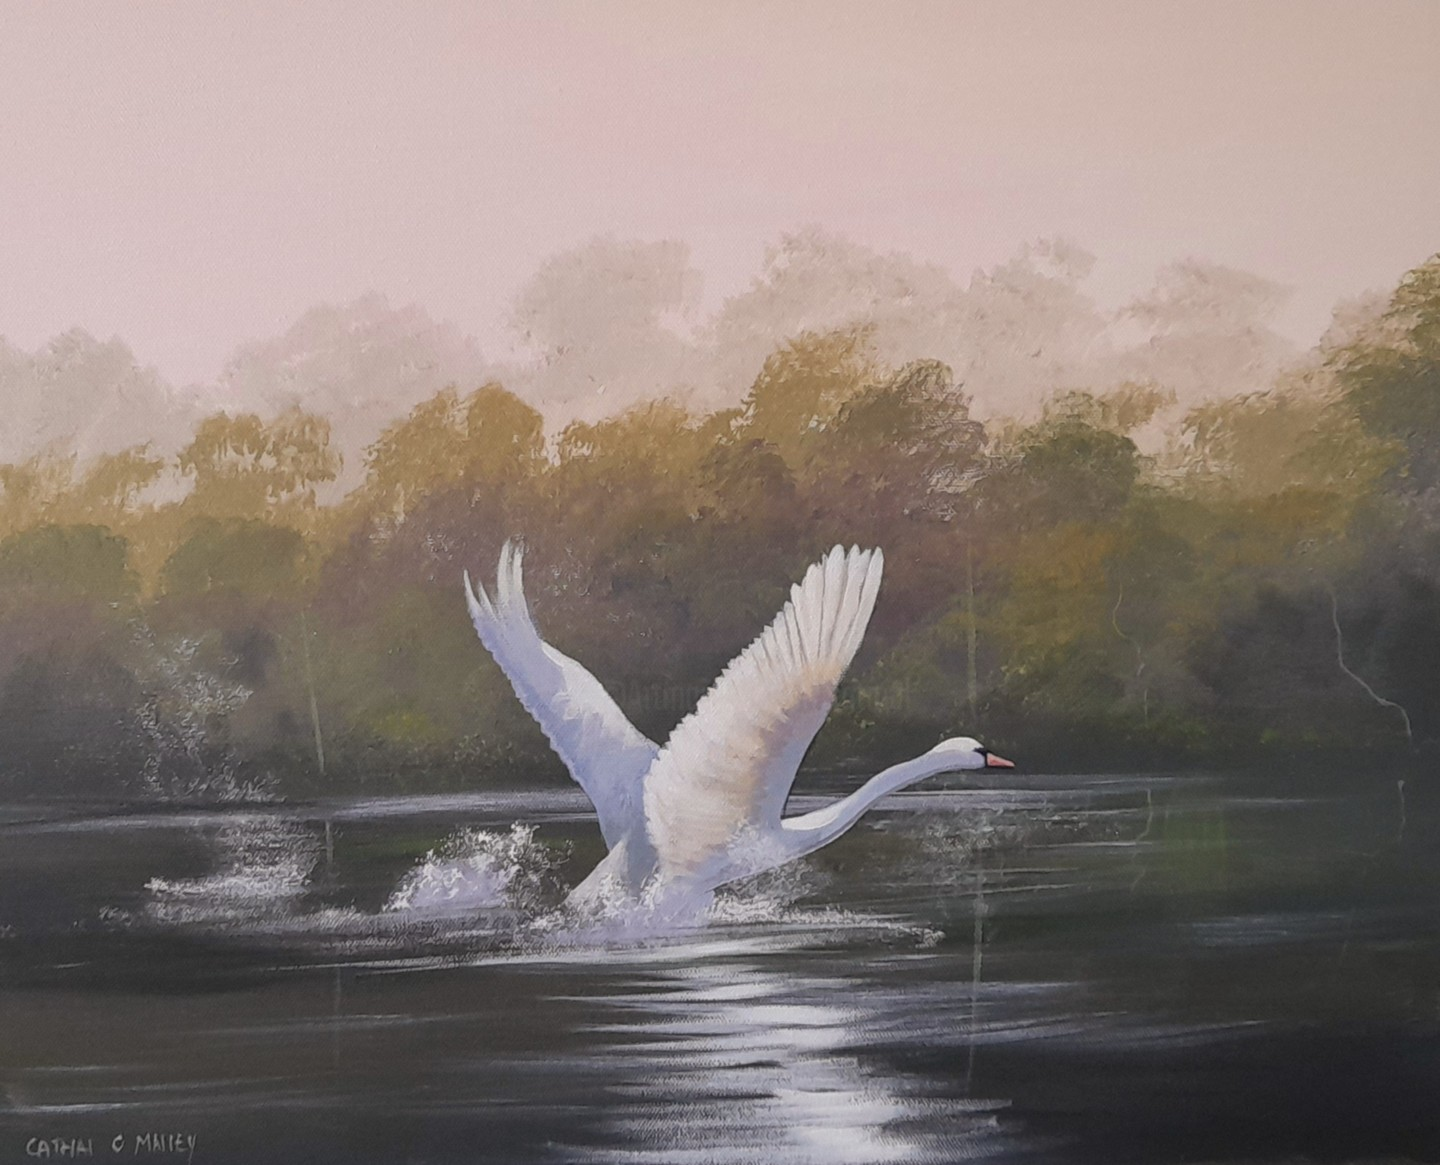 Cathal O Malley - Swan rising